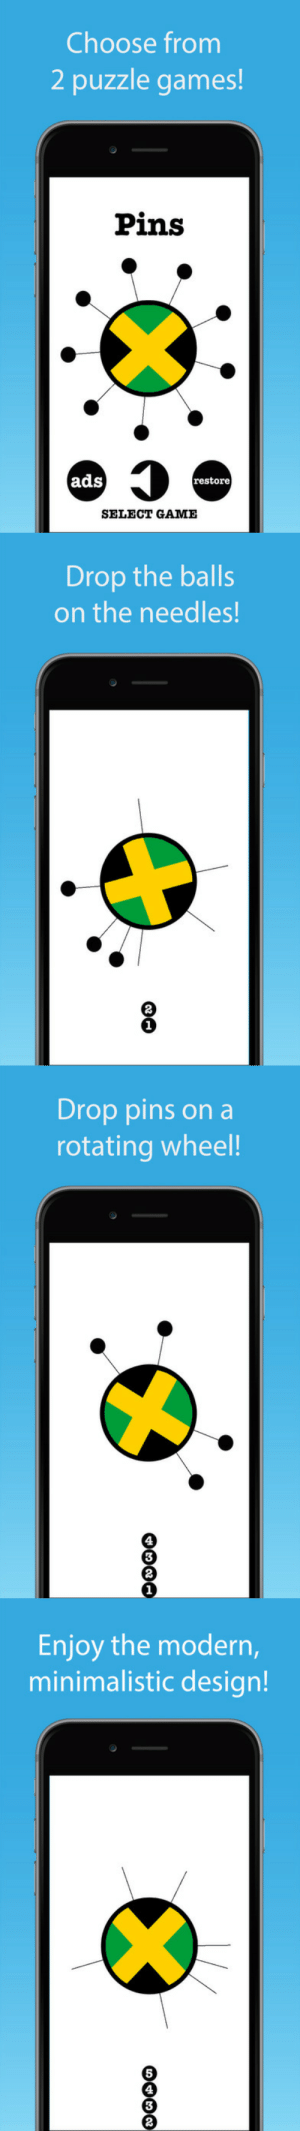 meme-apartman:    Pins  Needles - Fun Spinning Puzzle Game   Test your reflexes and logic skills in two fun puzzle games. Pins and Needles includes two separate spinning circle games! https://goo.gl/moClZV : Choose from  2 puzzle games!  Pins  1  ads  restore  SELECT GAME   Drop the balls  on the needles!  2   Drop pins on a  rotating wheel!  4  3  2   Enjoy the modern,  minimalistic design!  5  4  3  2 meme-apartman:    Pins  Needles - Fun Spinning Puzzle Game   Test your reflexes and logic skills in two fun puzzle games. Pins and Needles includes two separate spinning circle games! https://goo.gl/moClZV